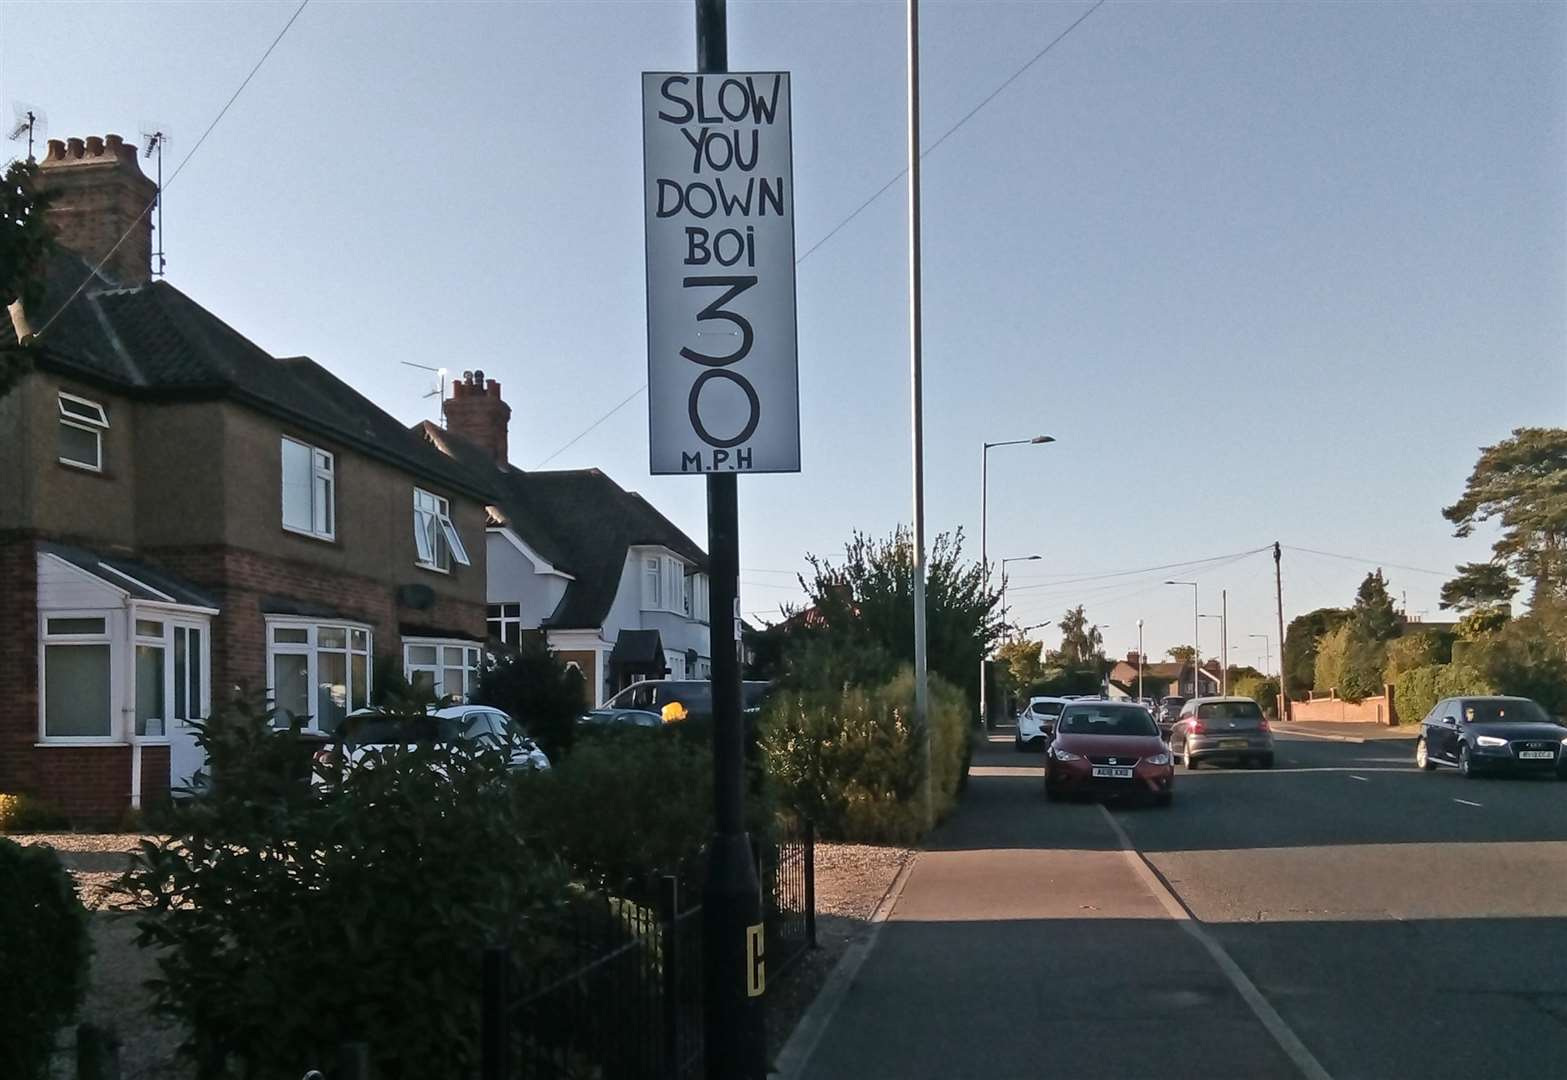 Home-made 30mph sign on main King's Lynn route spells out message